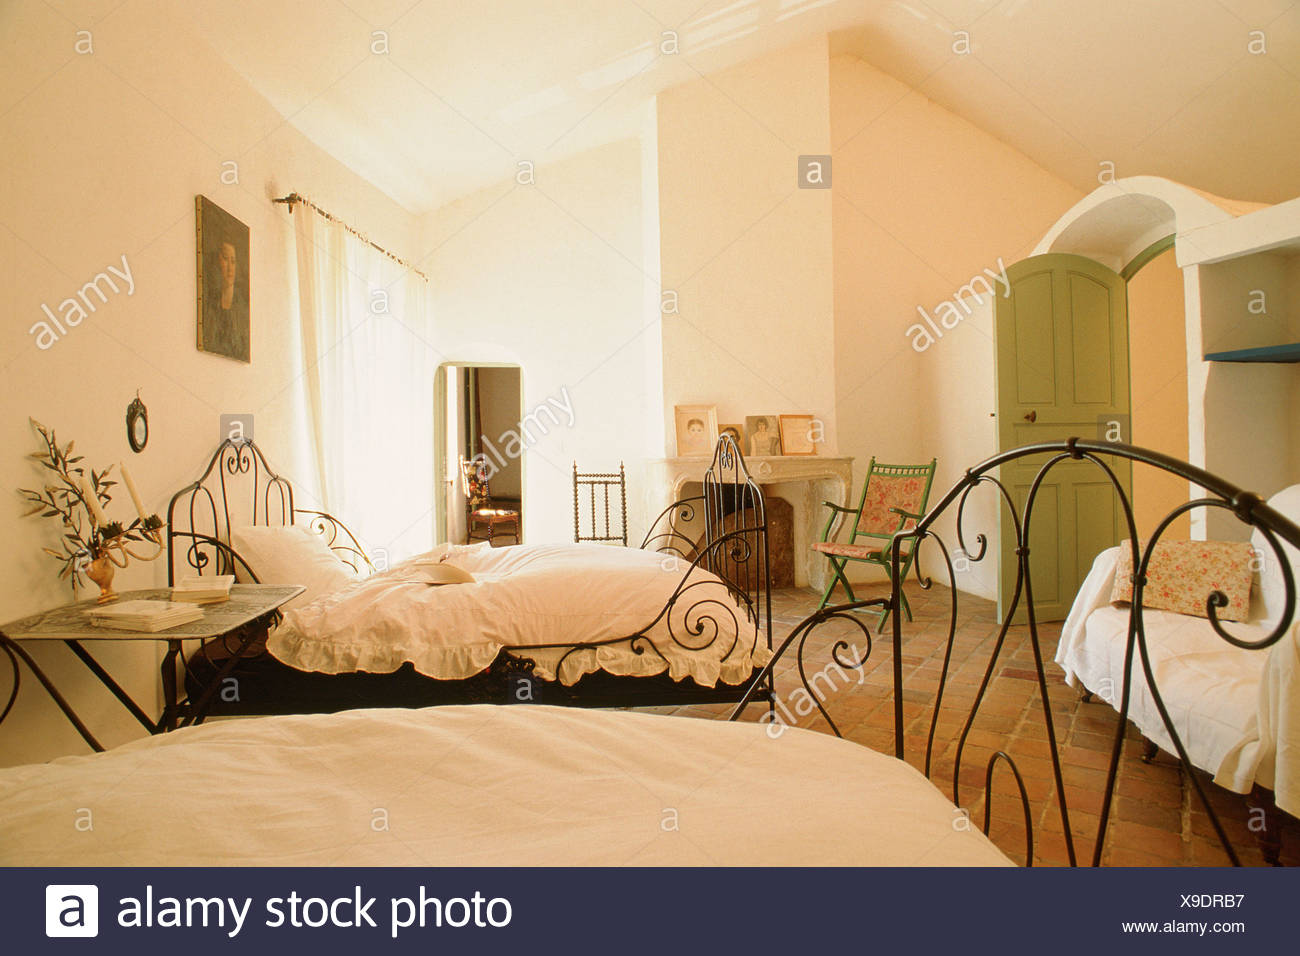 Bedroom beds in wrought iron bench console table and armchair open ...